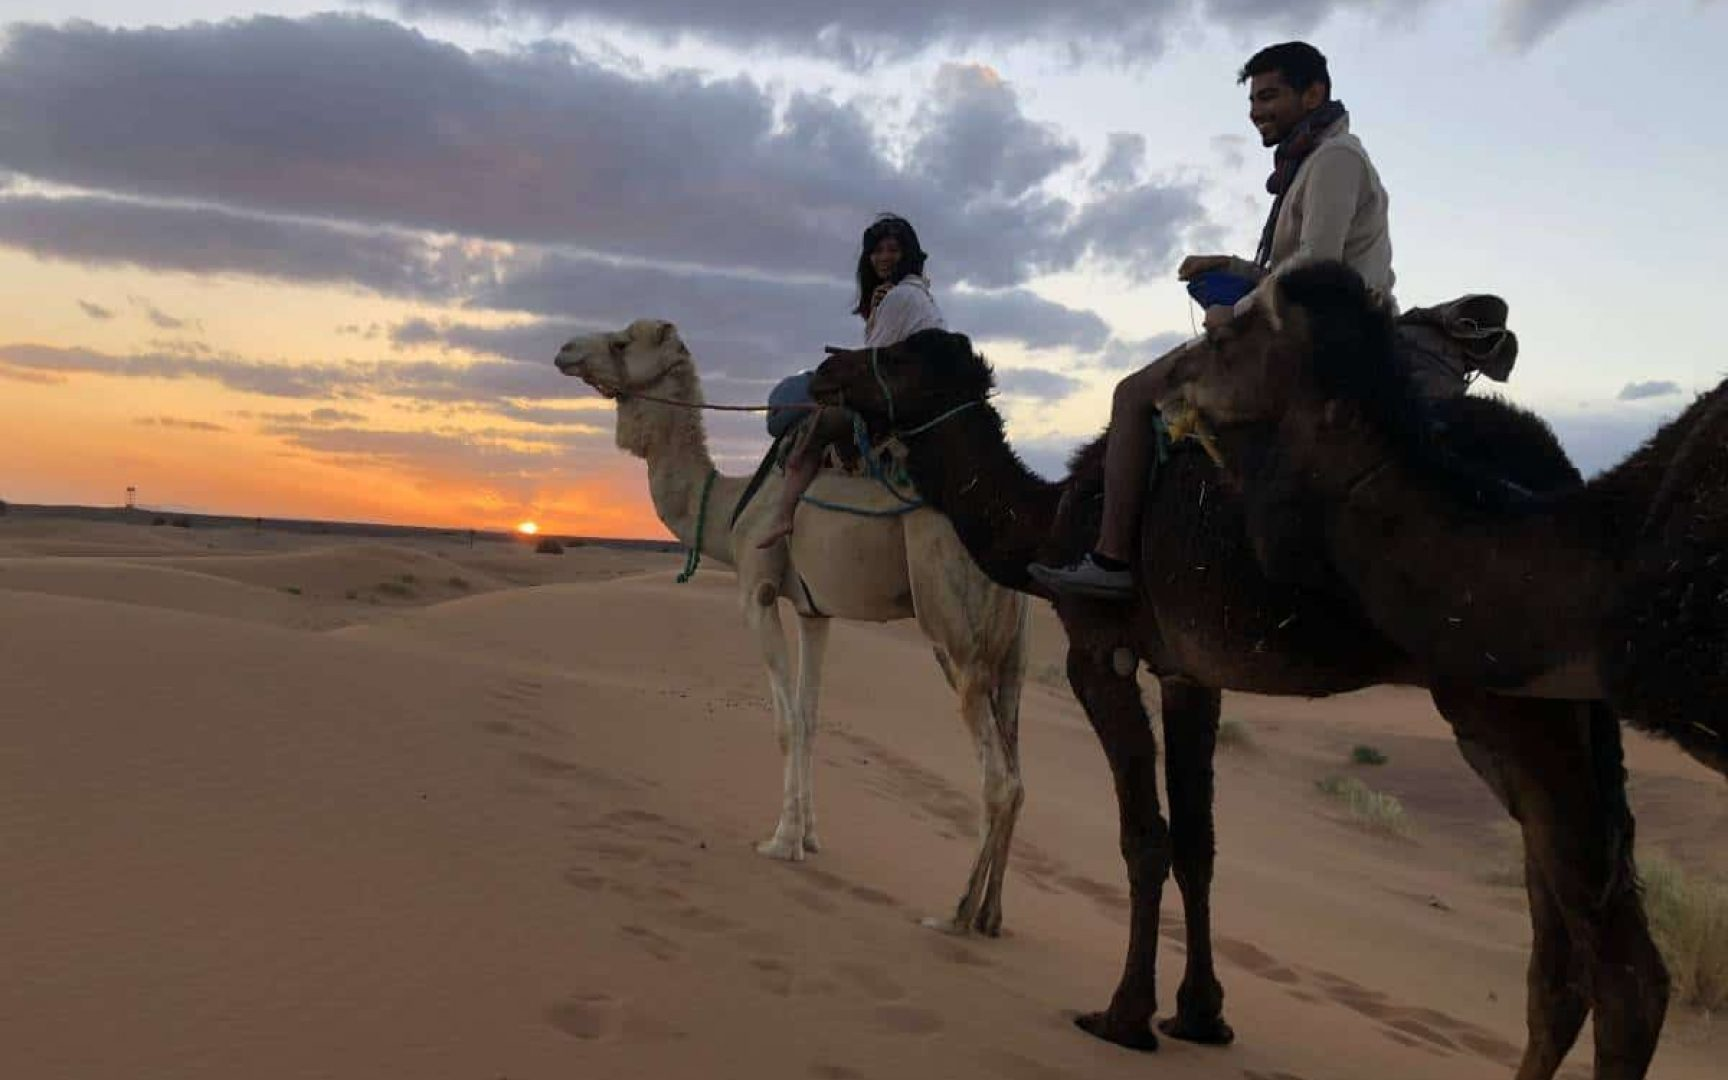 Two students riding camels on sandy dunes at sunset